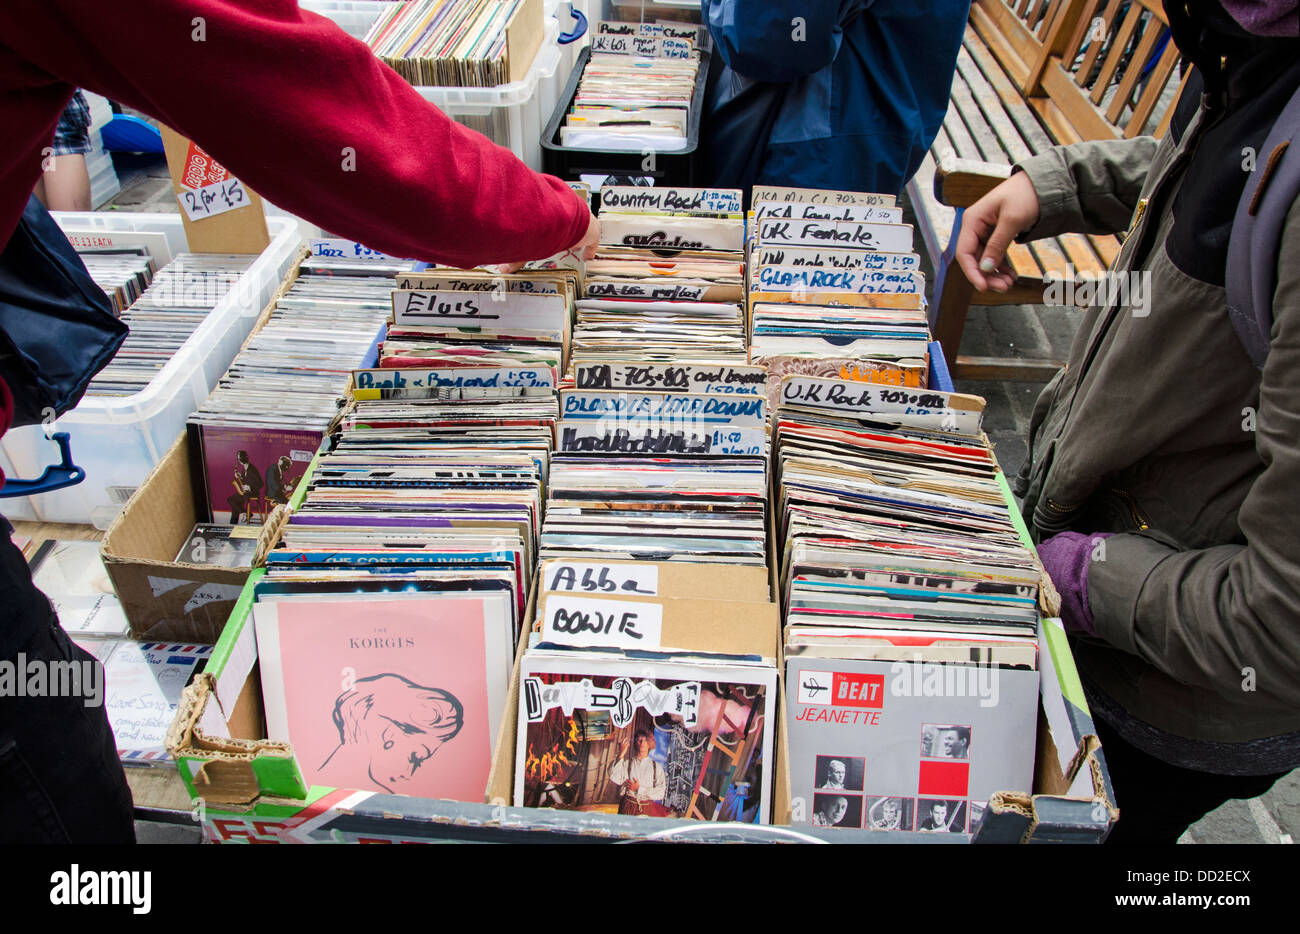 Secondhand records for sale on a stall in the Grassmarket during the annual Grassmarket Fair. - Stock Image